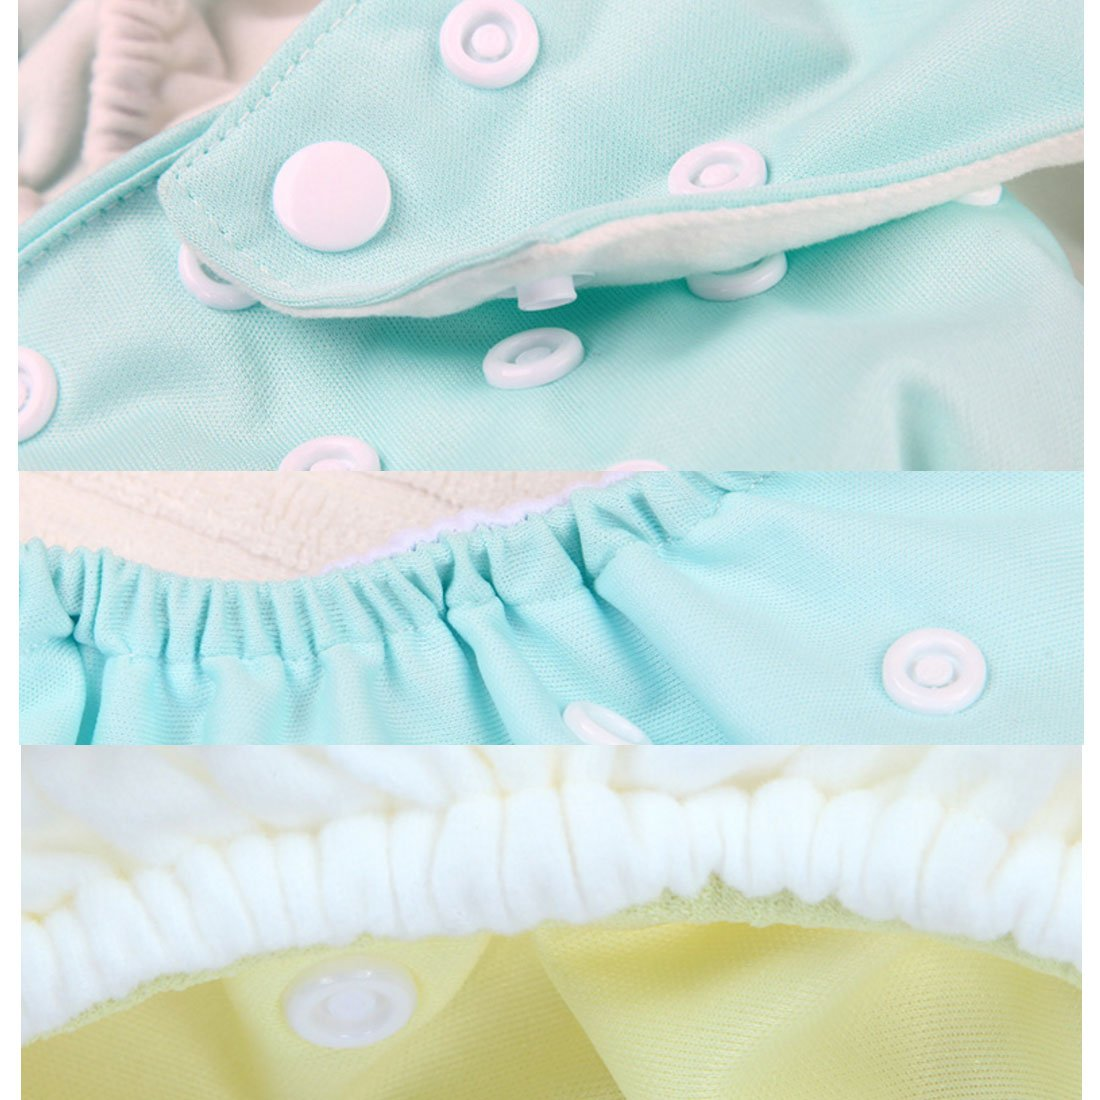 13.7x10.6 inches for baby 6-25 lbs FYGOOD Baby Cloth Diaper Cover Newborn Wrap Snap Diaper Cover 7 pack